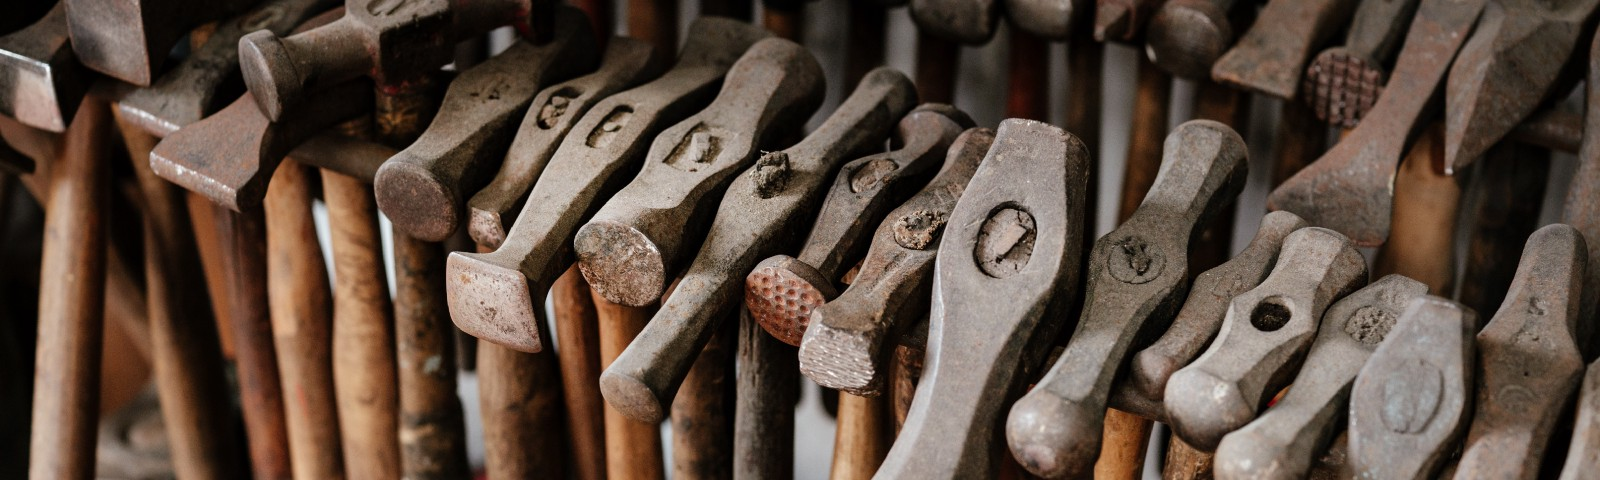 lots of old hammers — because Make is 'one more tool in the toolbox'